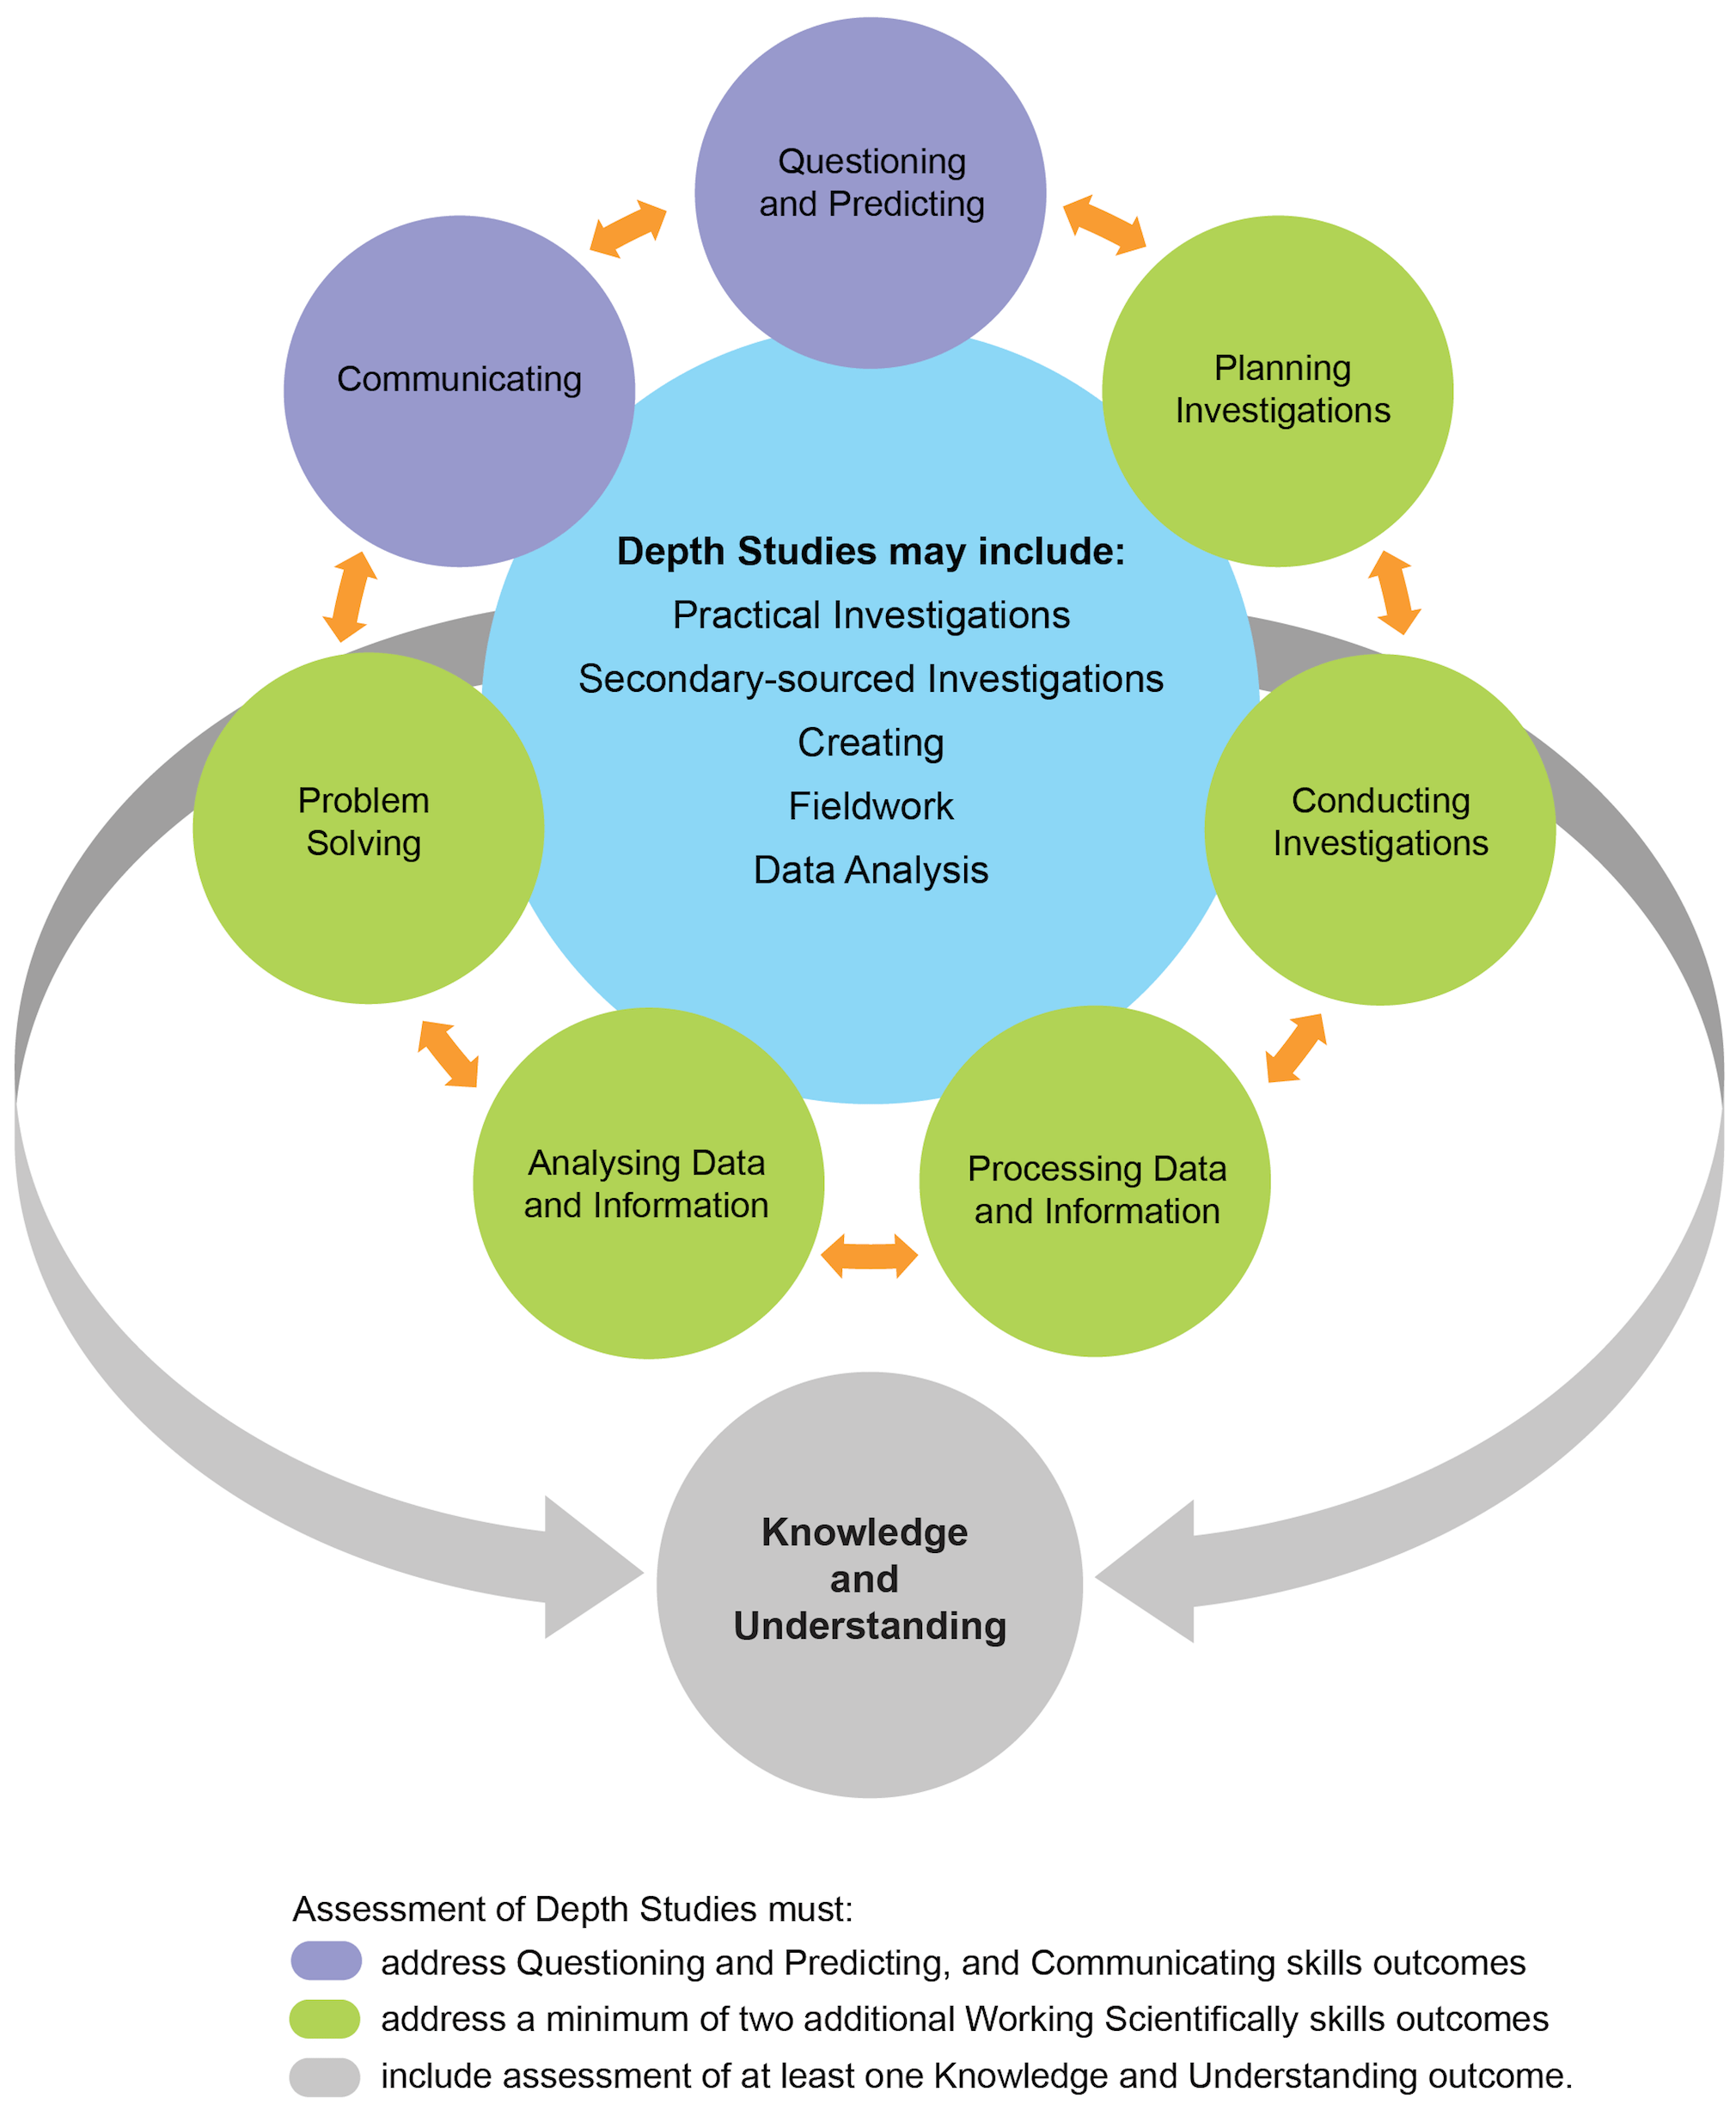 The Depth Studies diagram shows a central circle showing that Depth Studies may include: Practical Investigations, Secondary-sourced Investigations, Creating, Fieldwork and Data Analysis. Surrounding the central circle is a ring of circles interconnected with double ended arrows. Each circle represents the seven Working Scientifically outcomes: Questioning and Predicting, Planning Investigations, Conducting Investigations, Processing Data and Information, Analysing Data and Information, Problem Solving and Communicating. Wrapping around the main diagram is a double ended arrow pointing to a circle labelled Knowledge and Understanding.